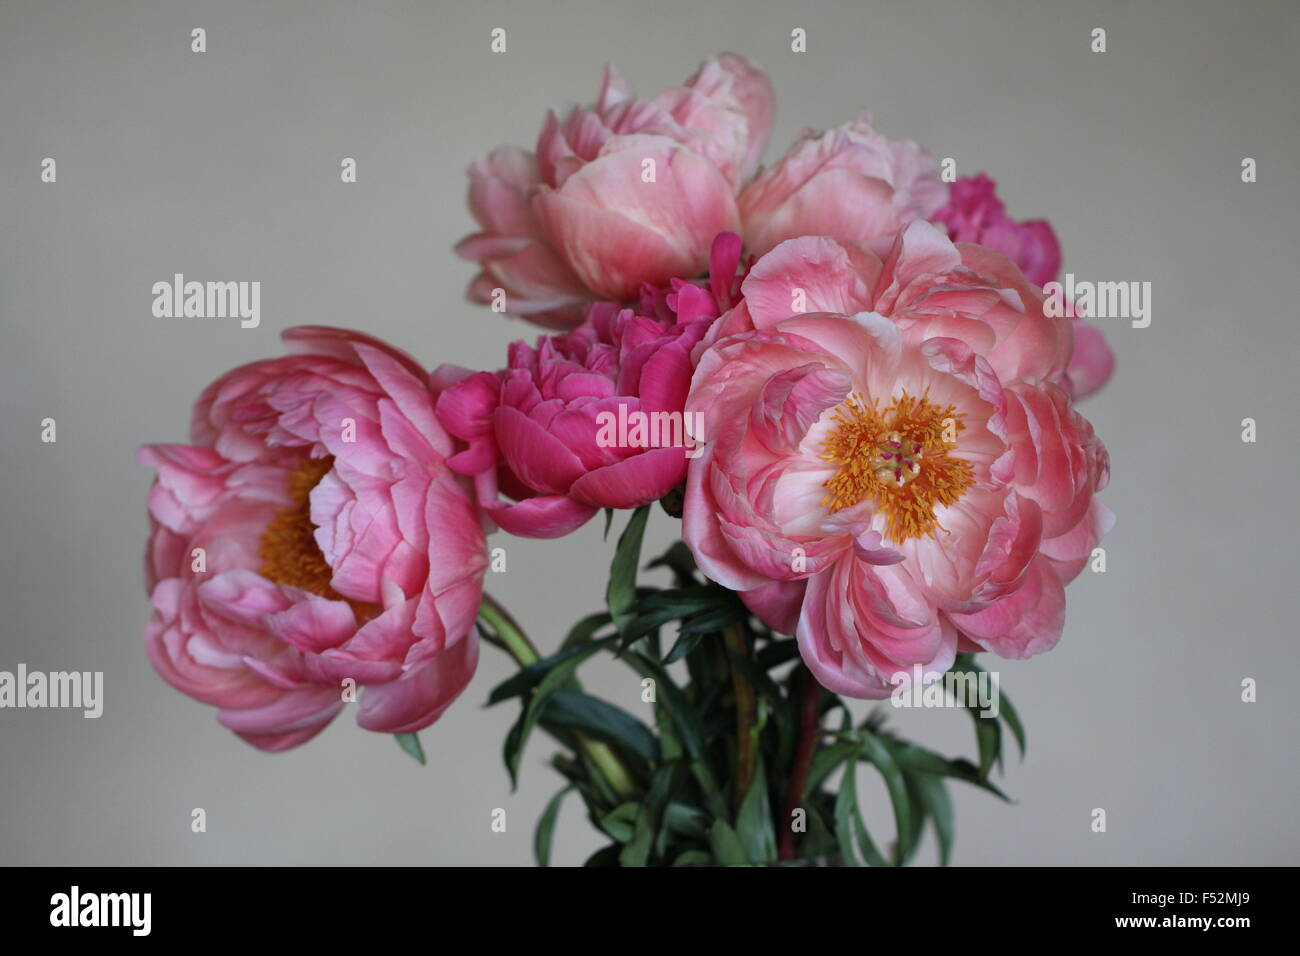 Bouquet of Pink Peonies - Stock Image